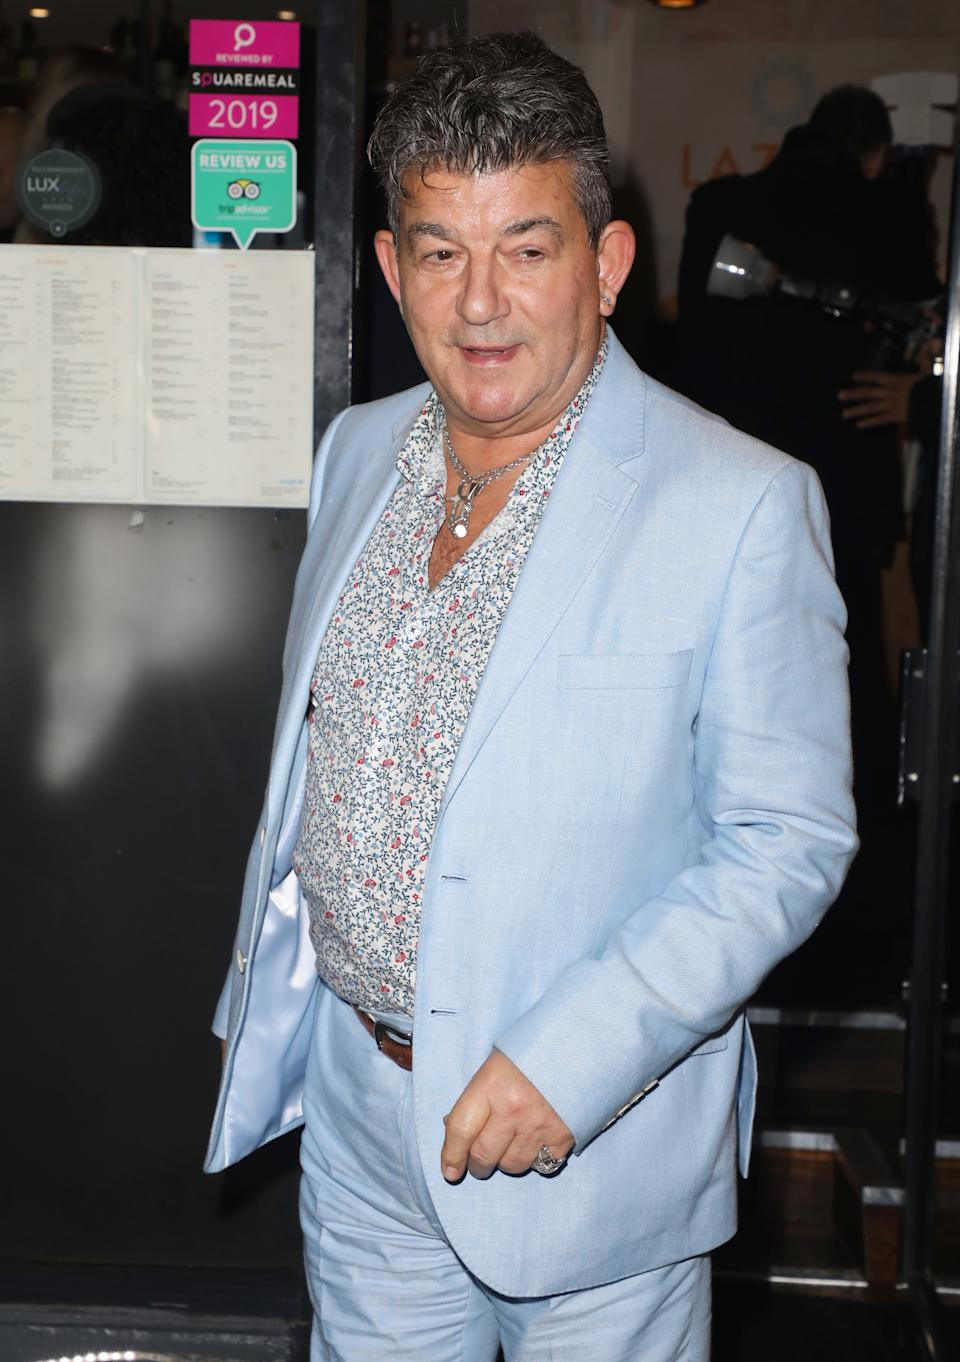 LONDON, UNITED KINGDOM - 2019/10/22: John Altman attends the launch party for the new Winter Terrace at Lazeez Tapas Mayfair restaurant in London. (Photo by Brett Cove/SOPA Images/LightRocket via Getty Images)